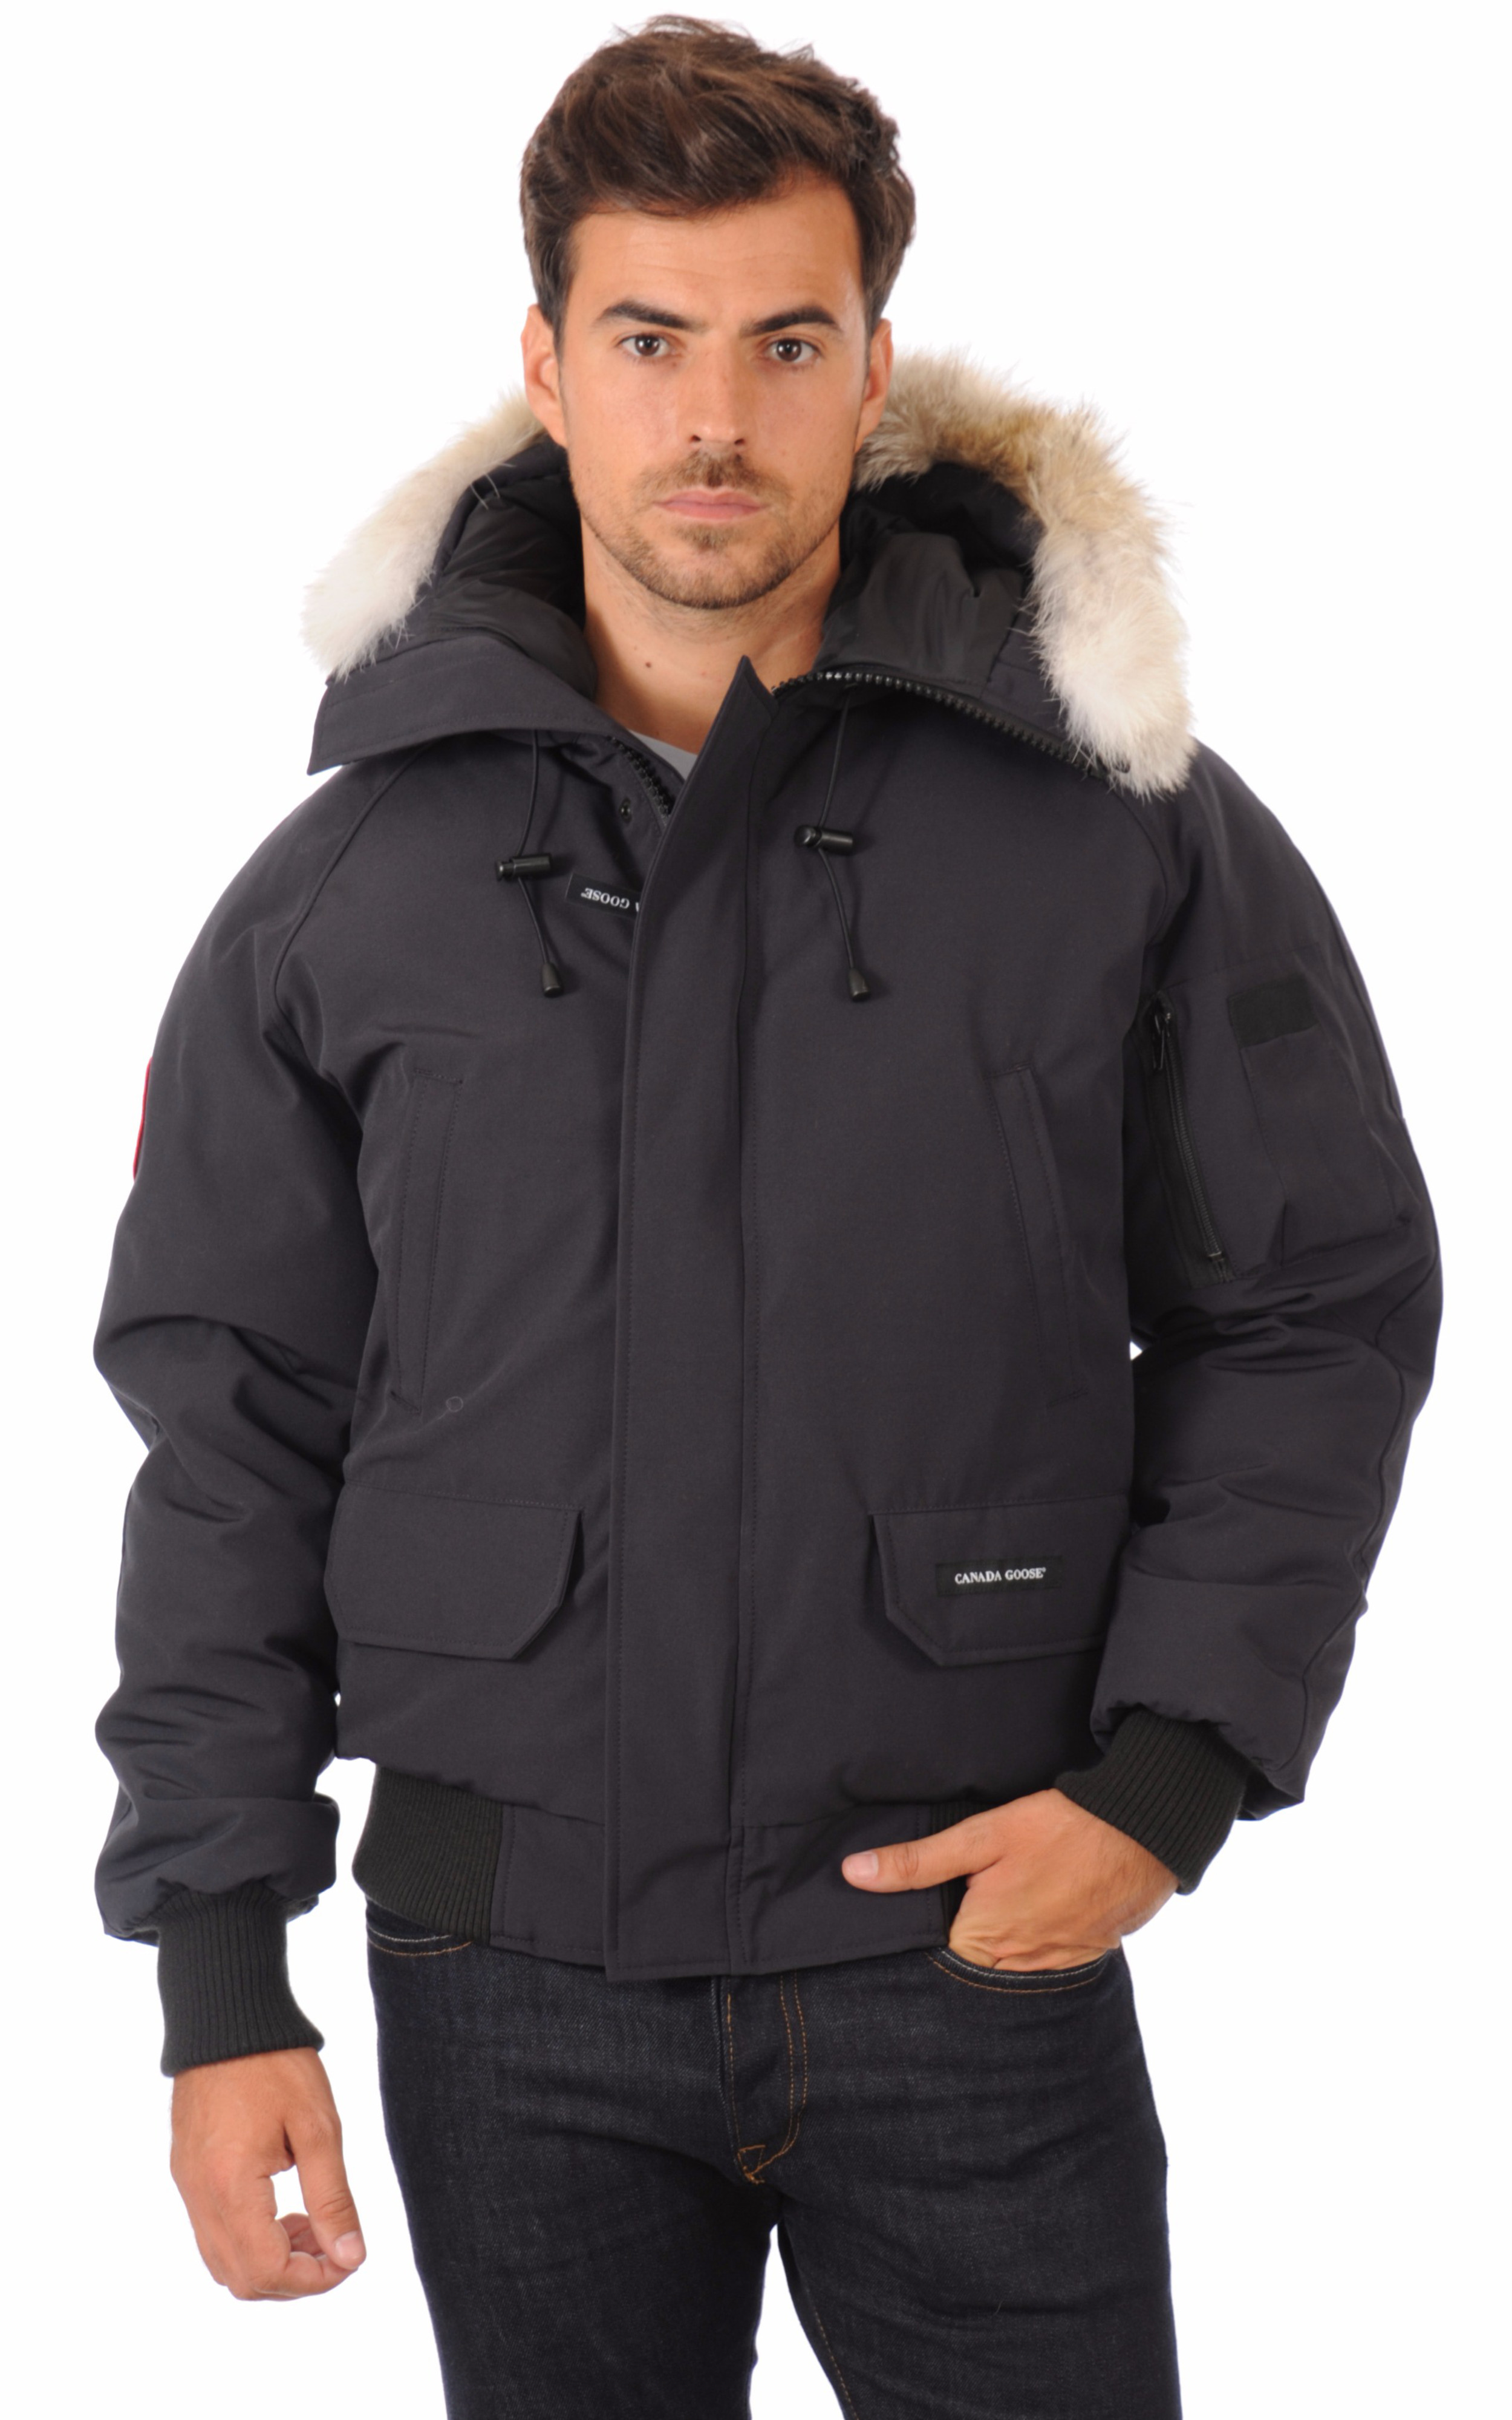 blouson chilliwack navy homme canada goose la canadienne doudoune parka textile navy. Black Bedroom Furniture Sets. Home Design Ideas